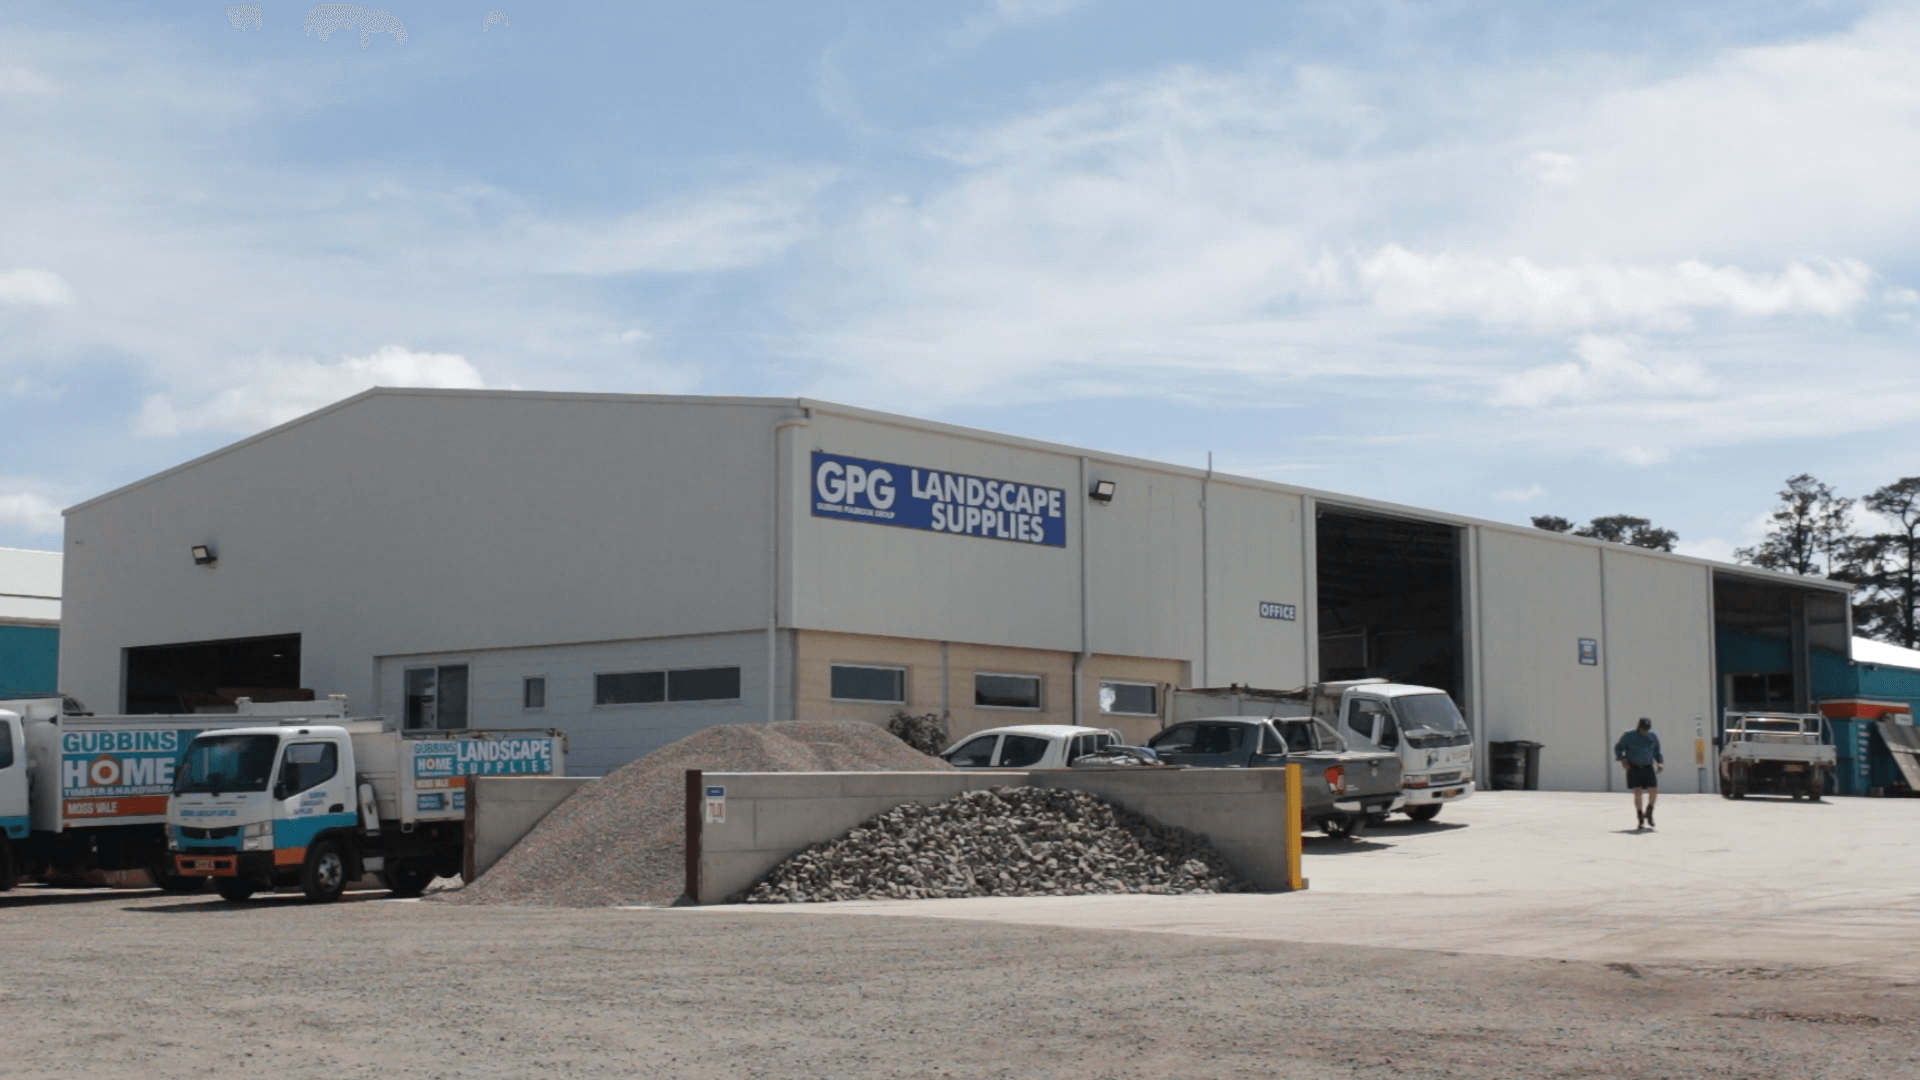 GPG Landscape Supplies commercial shed